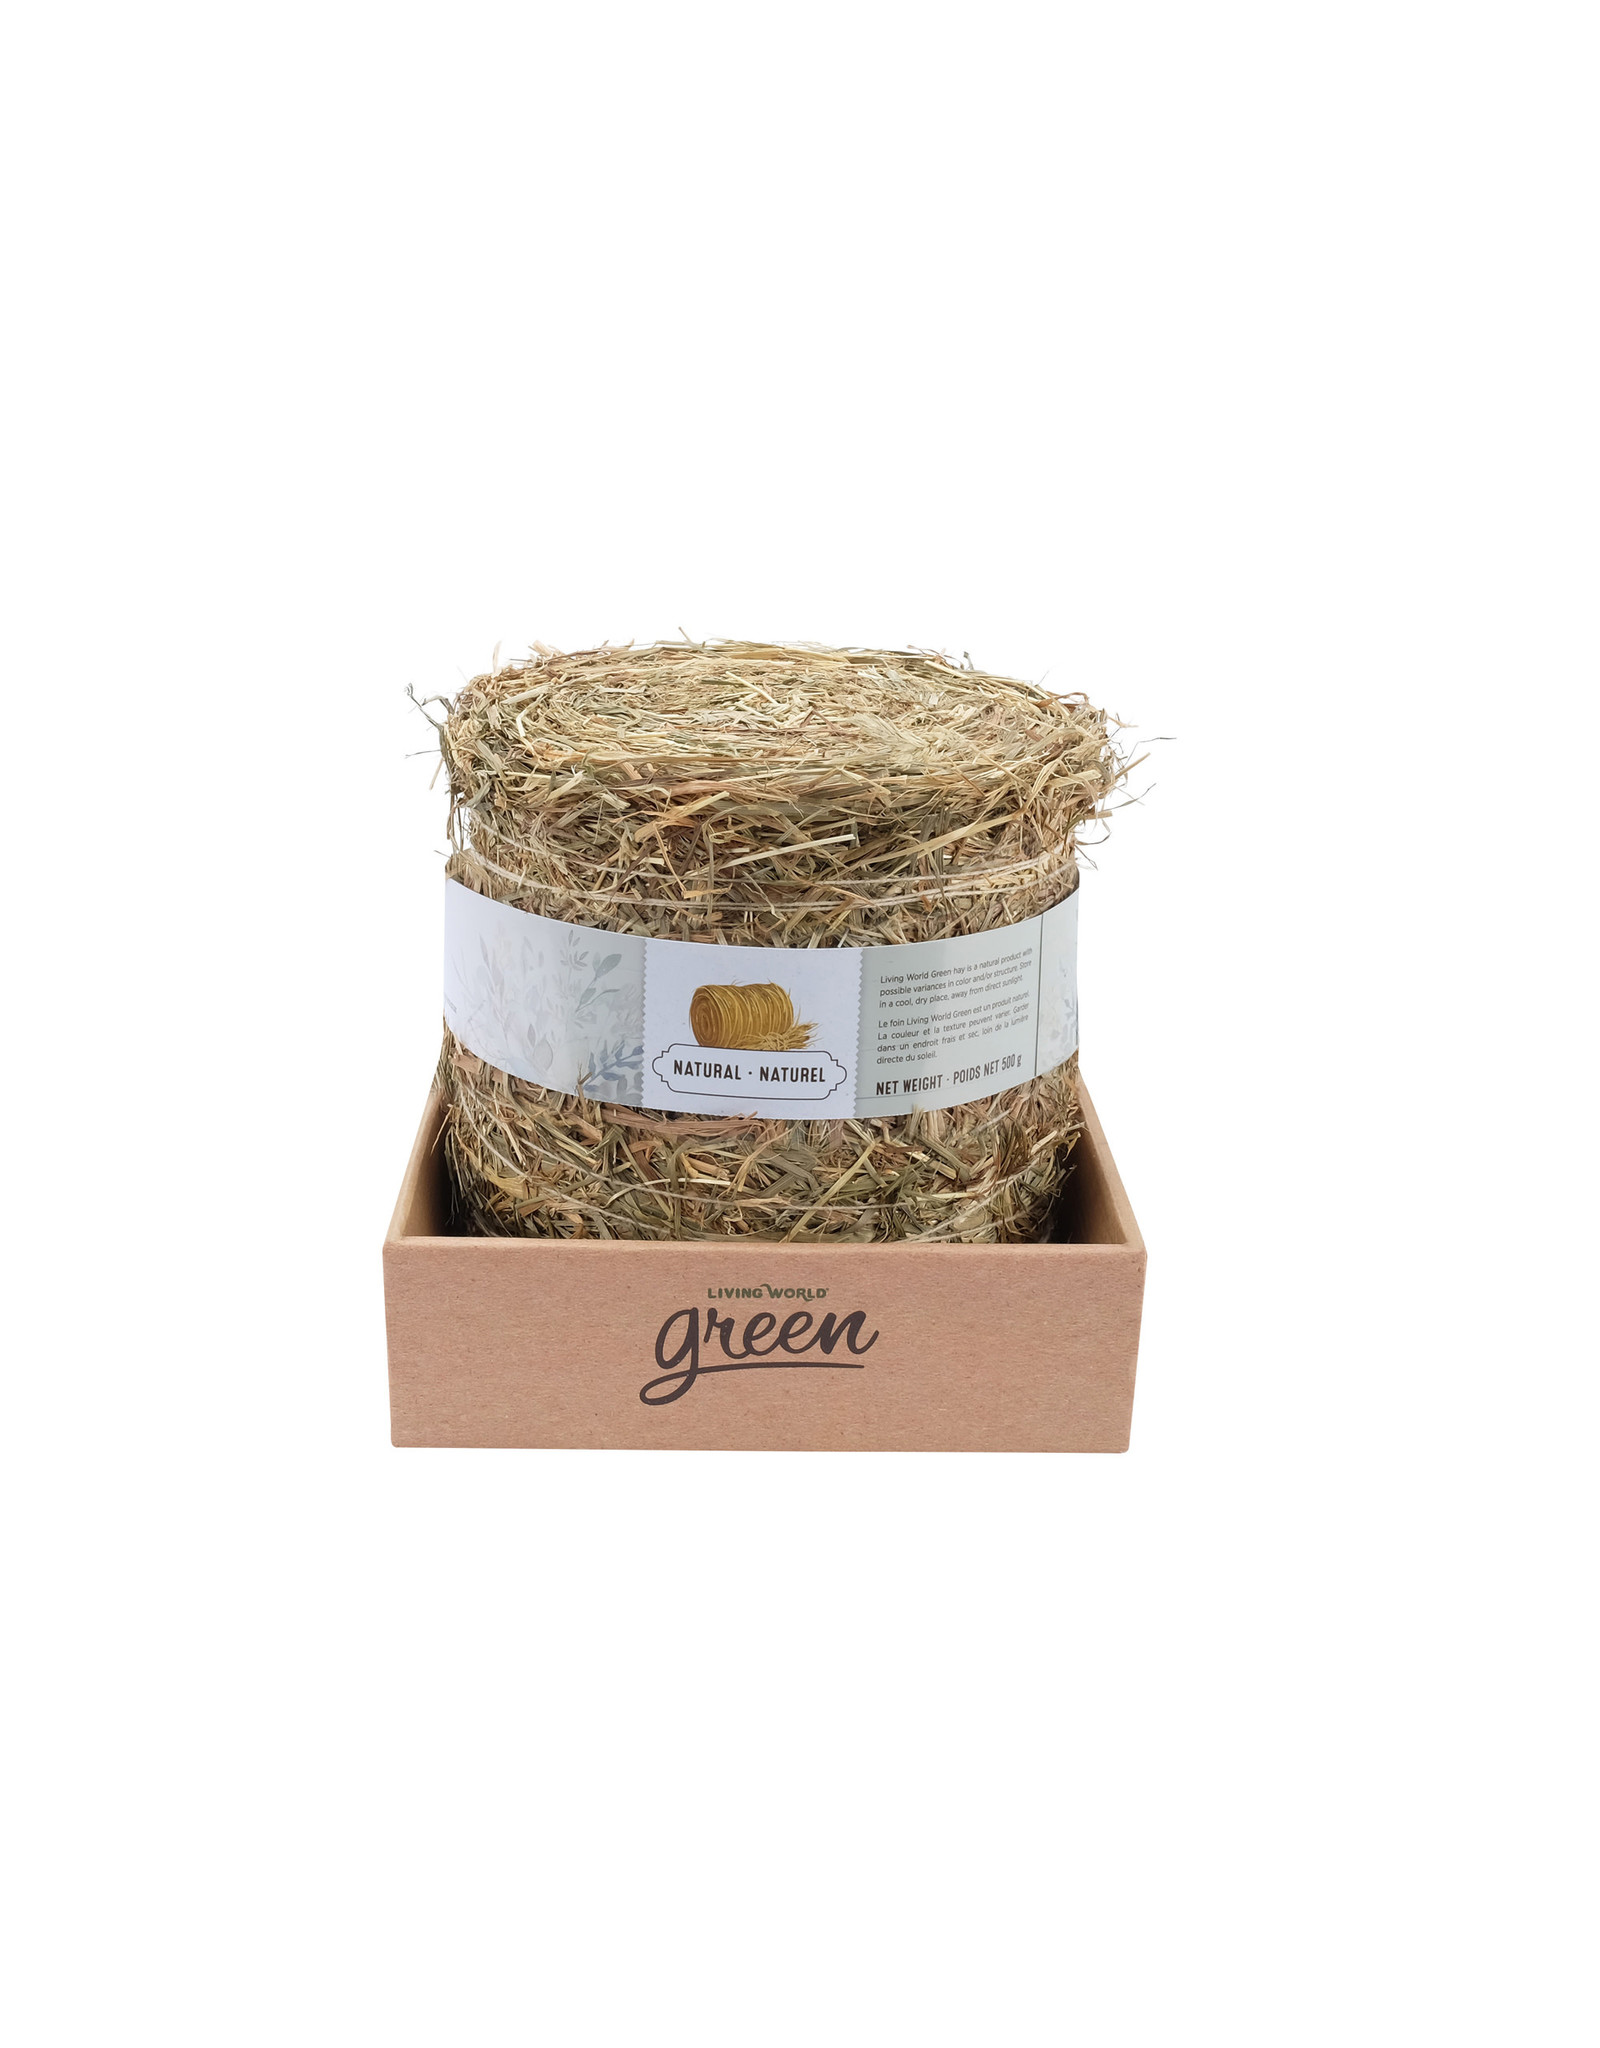 Living World Green Botanicals Meadow Hay Bale - Natural 500g